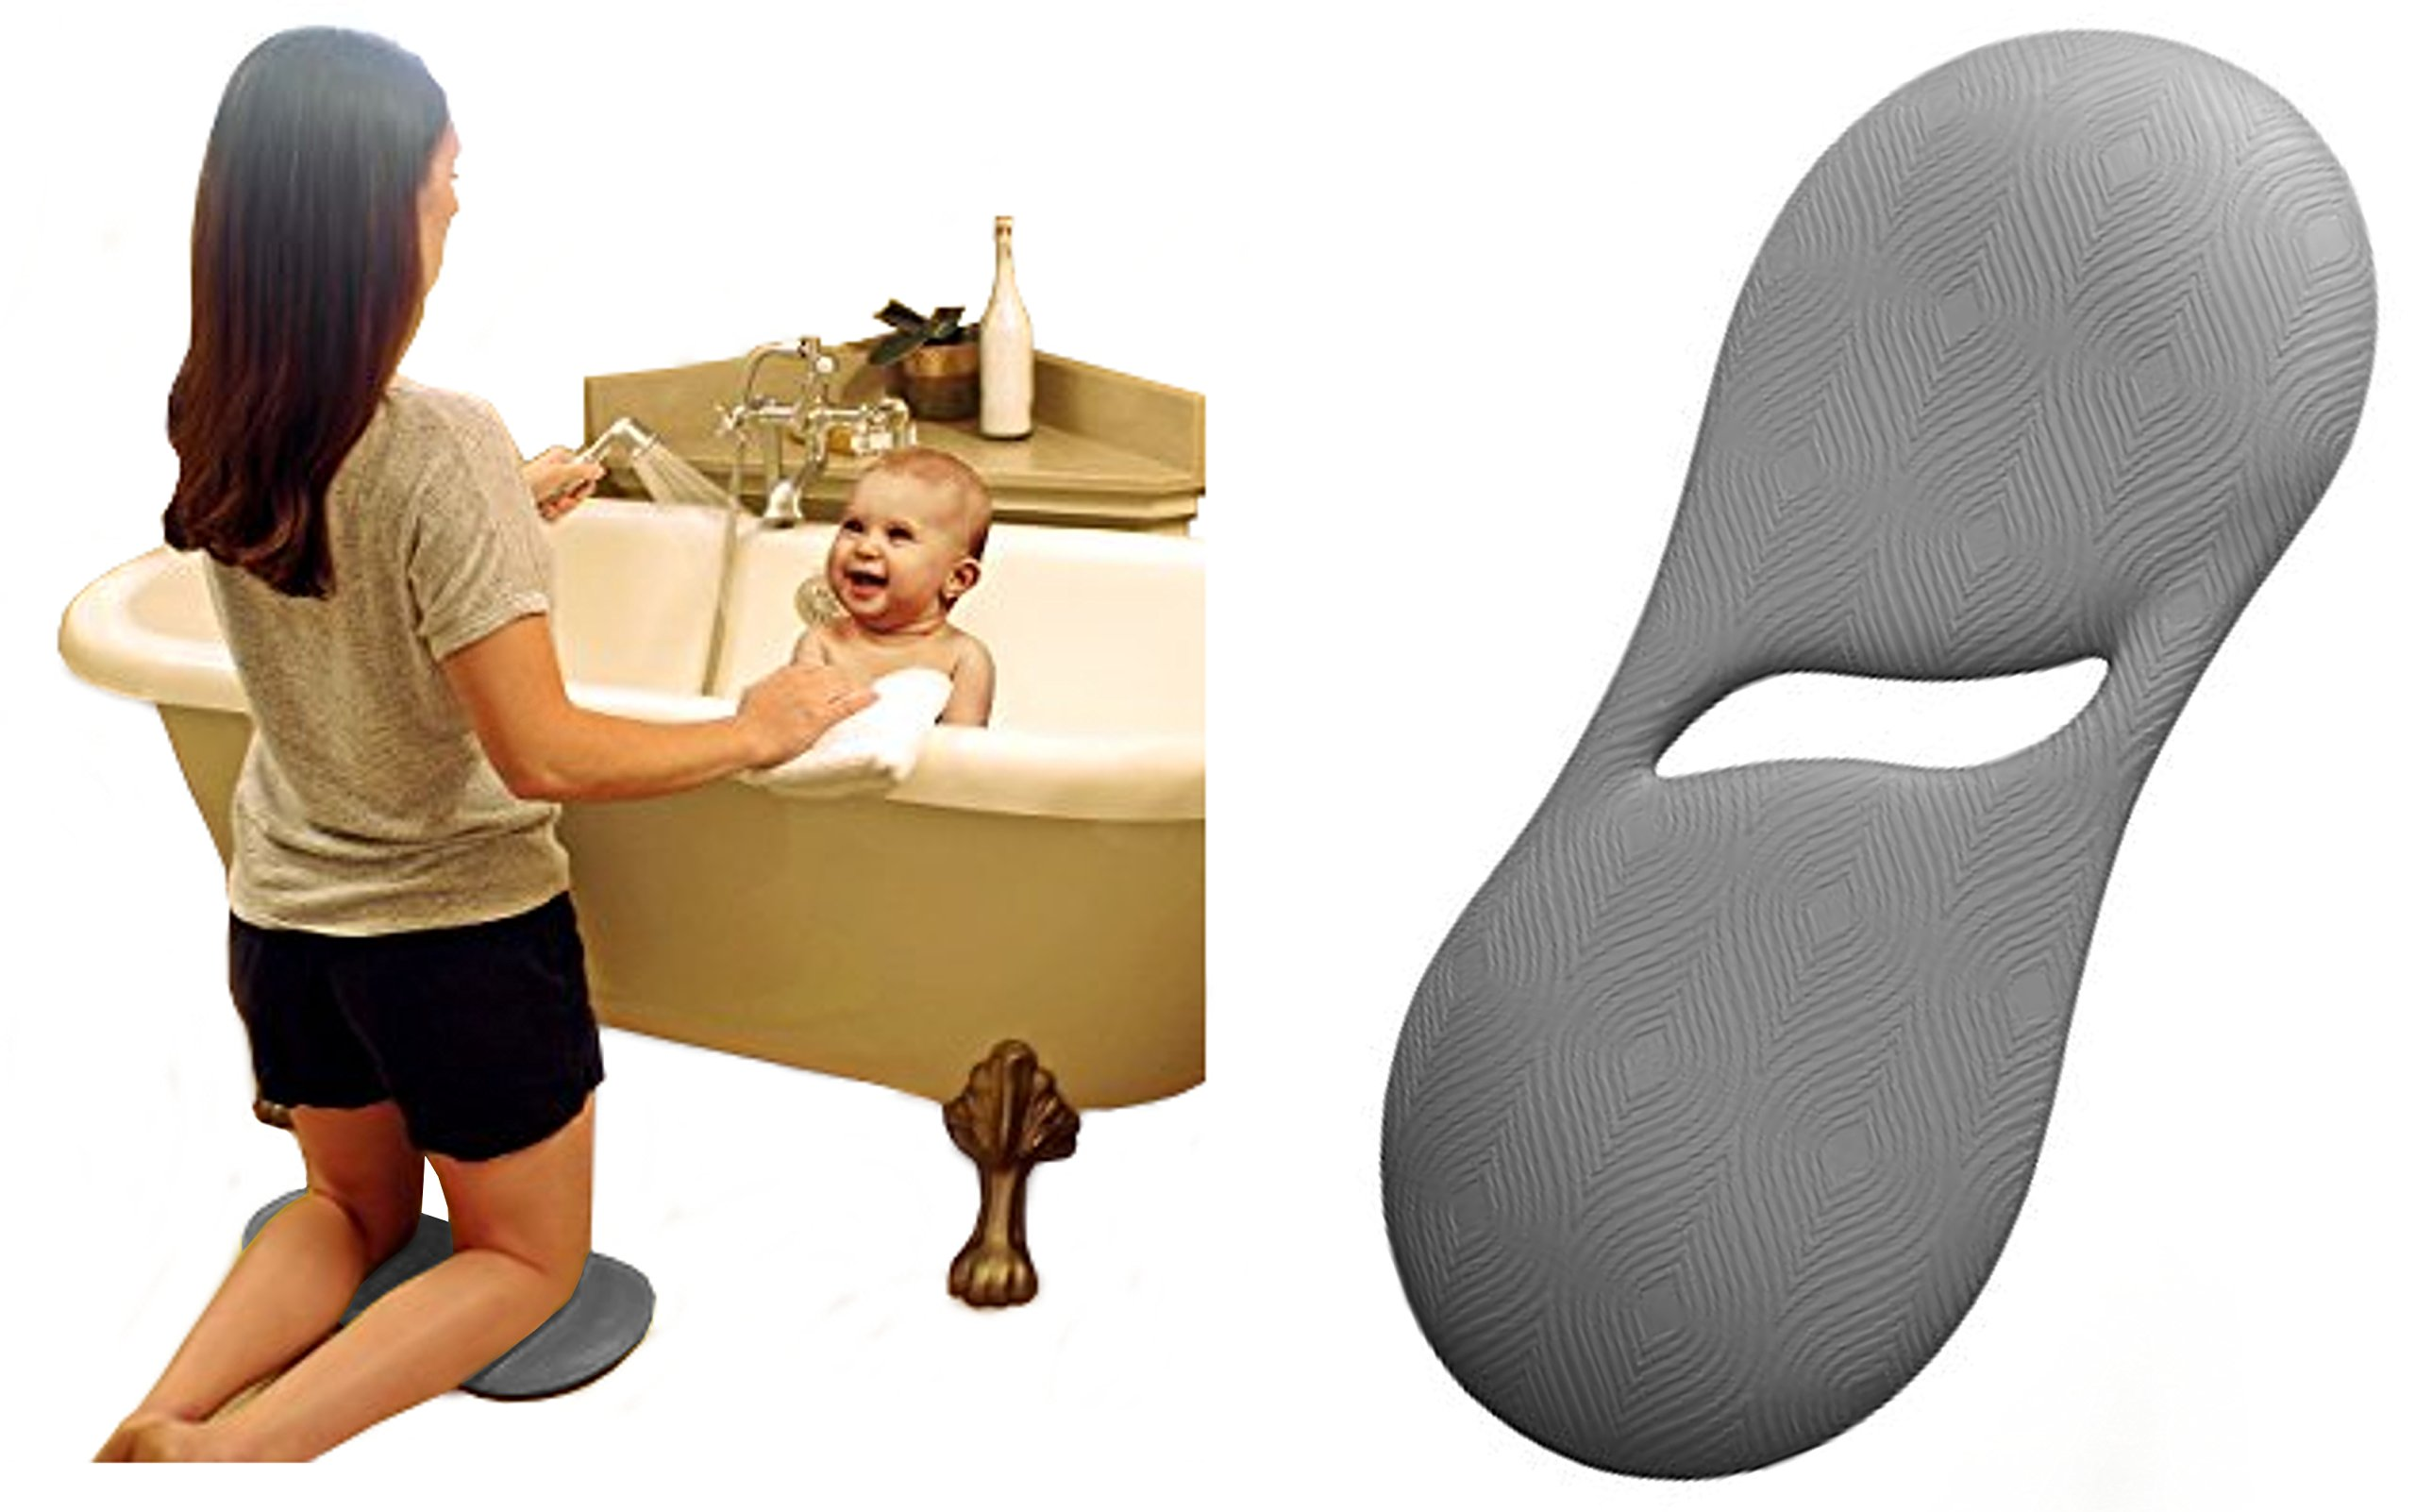 Essential Kneeler, Baby Bath Kneeler. Water-Proof! Thicker & More Durable! by Hack The Grind (Image #1)